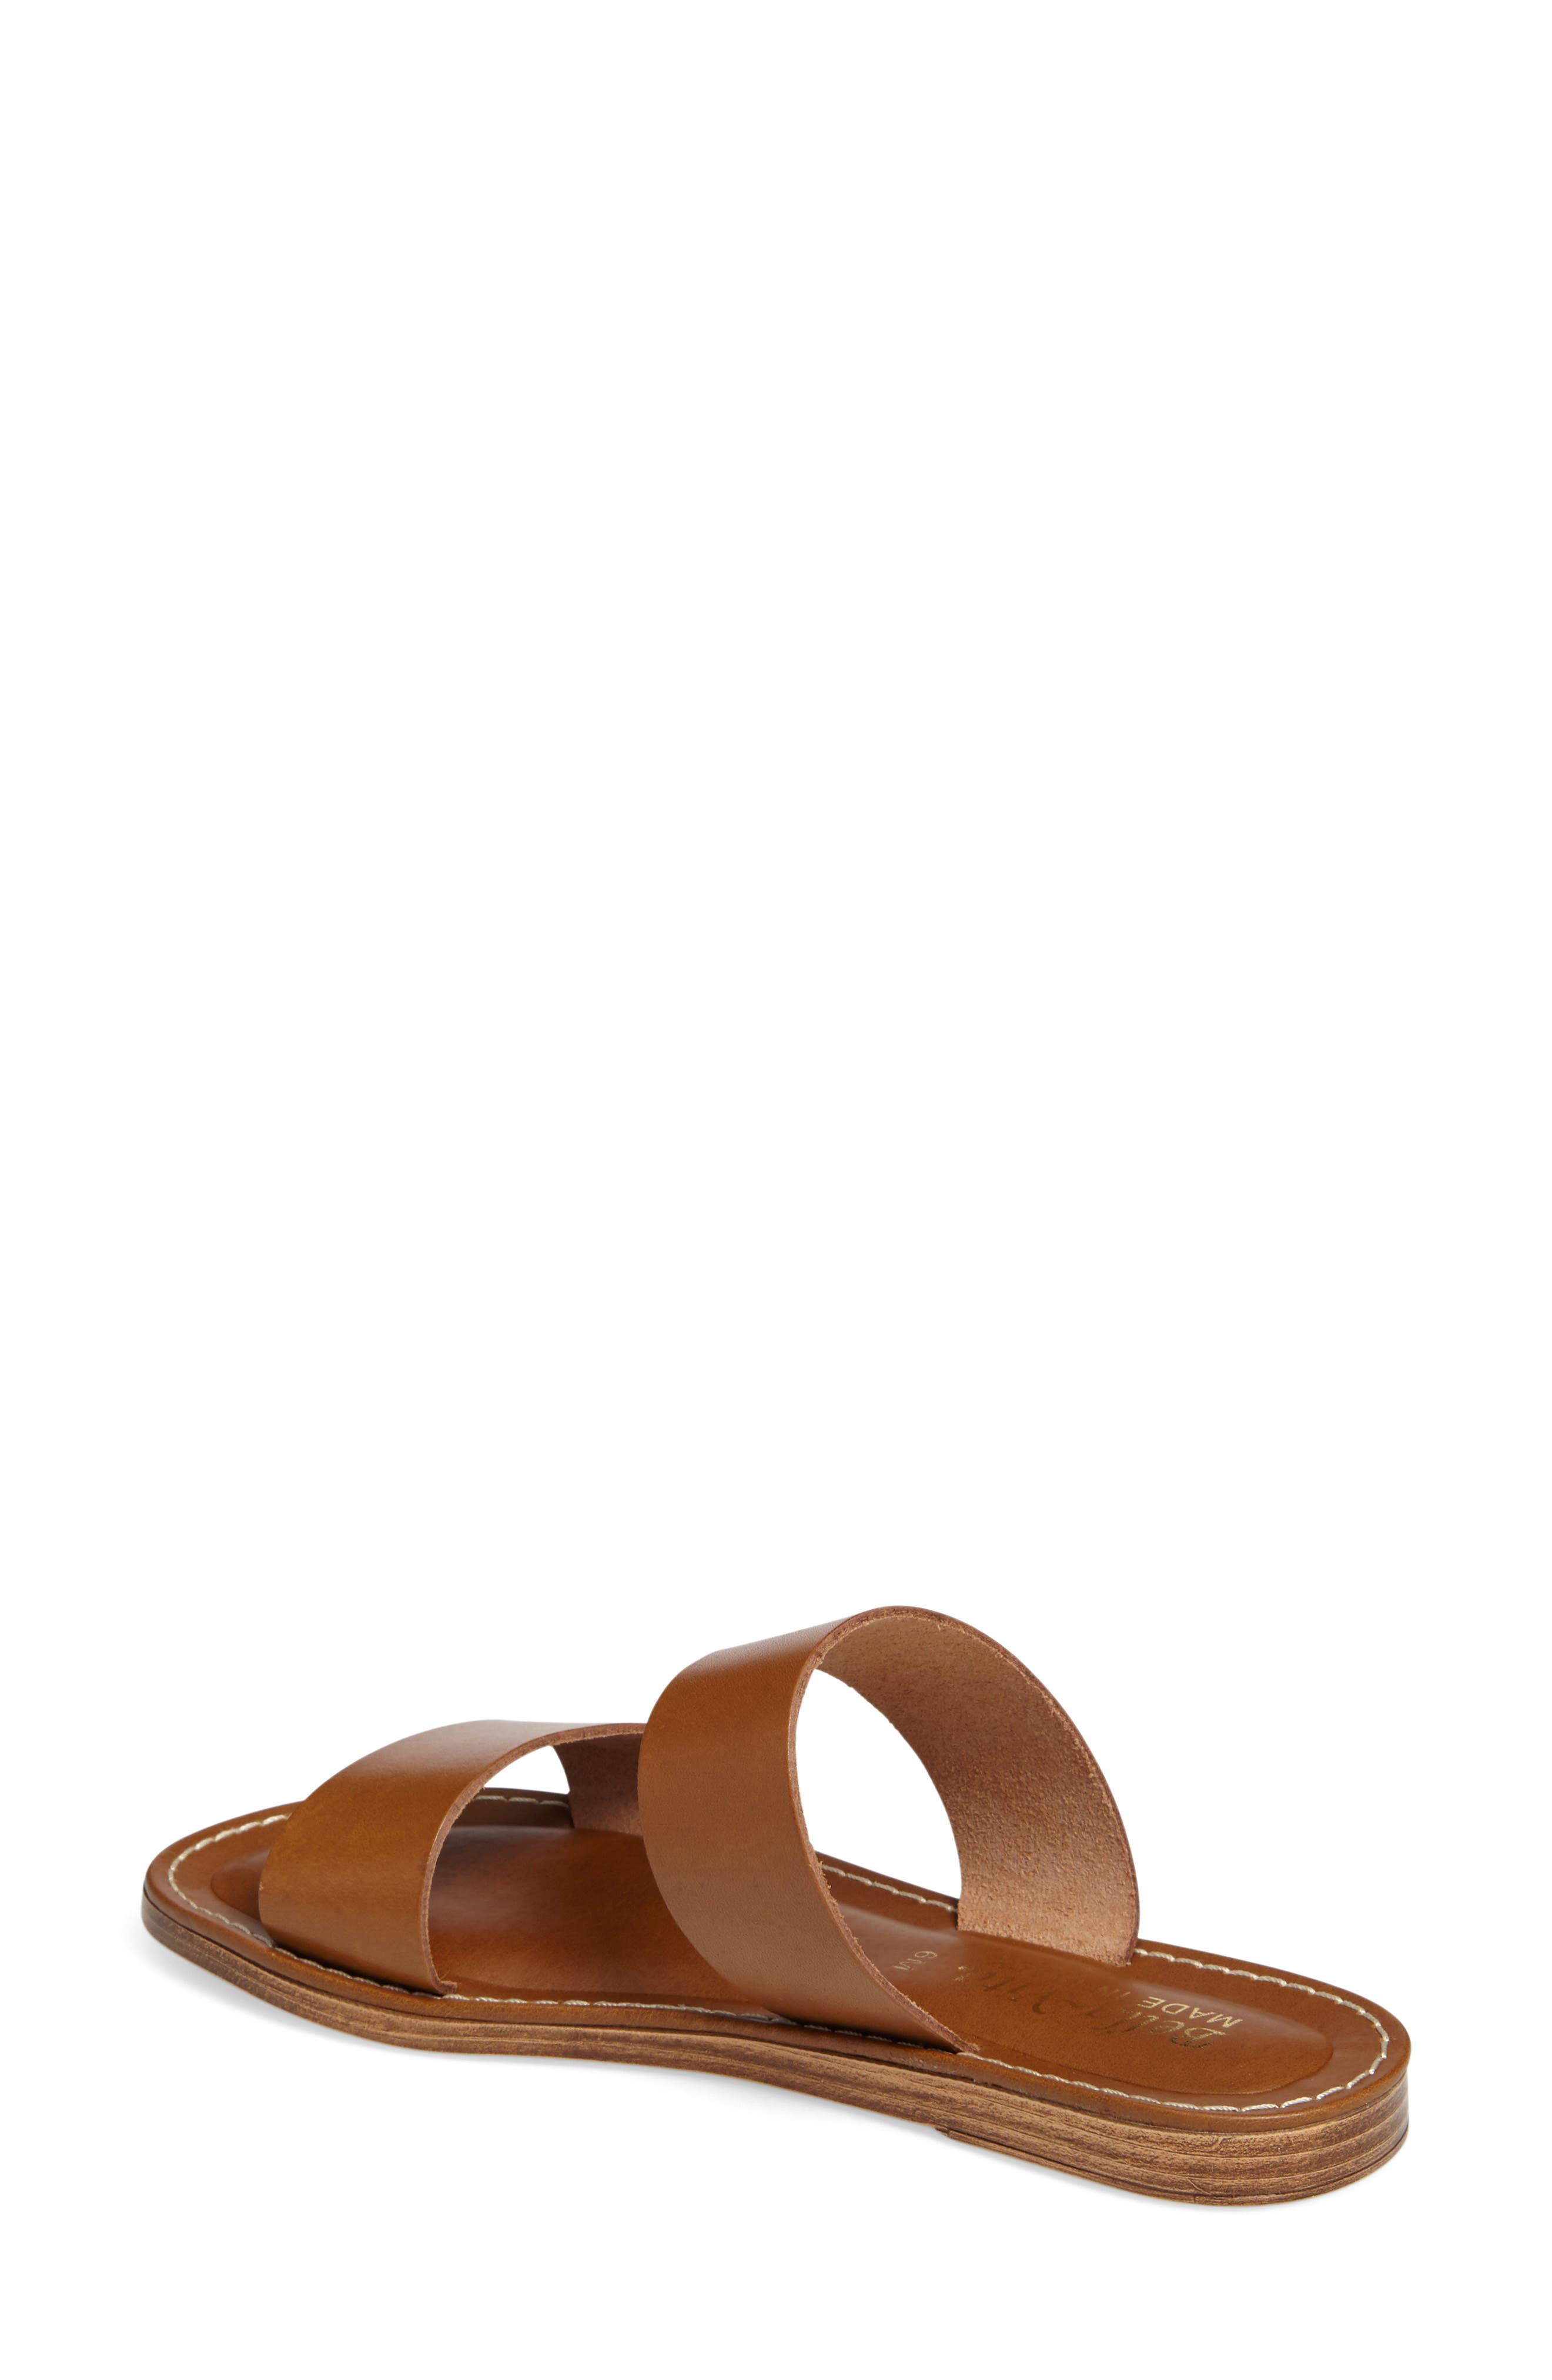 Alternate Image 2  - Bella Vita Imo Slide Sandal (Women)